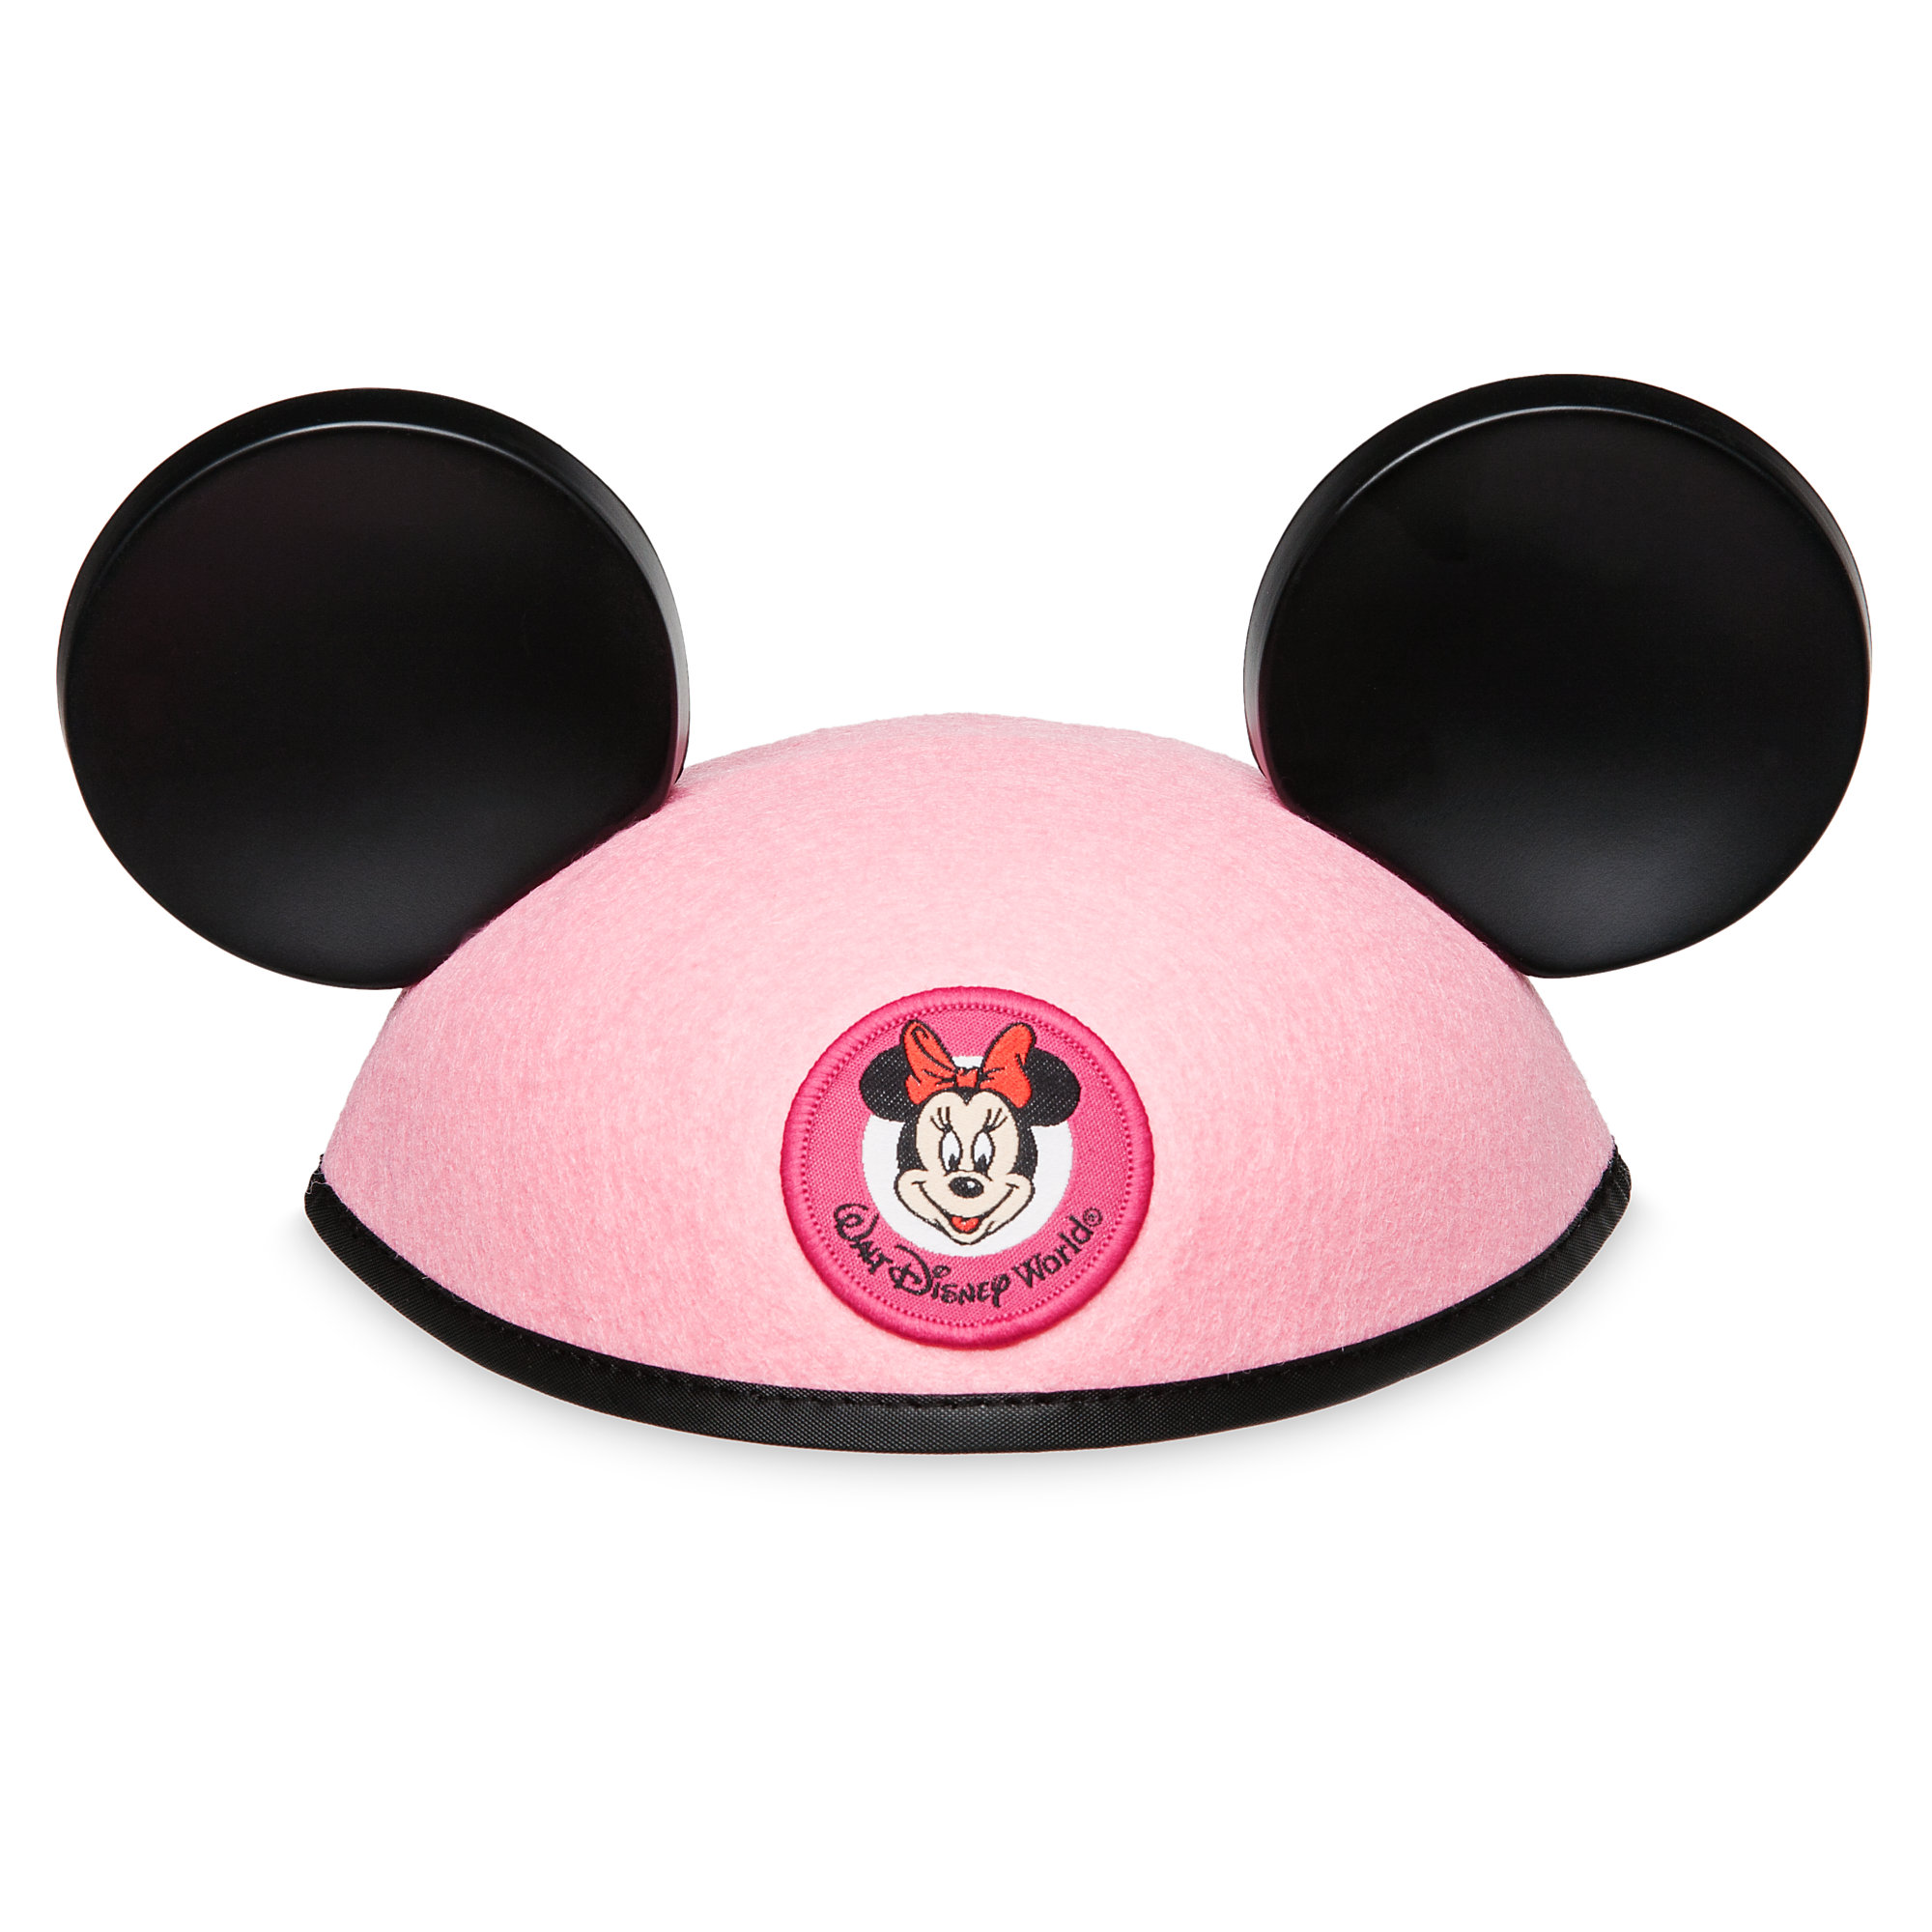 2000x2000 Minnie Mouse Ear Hat For Baby